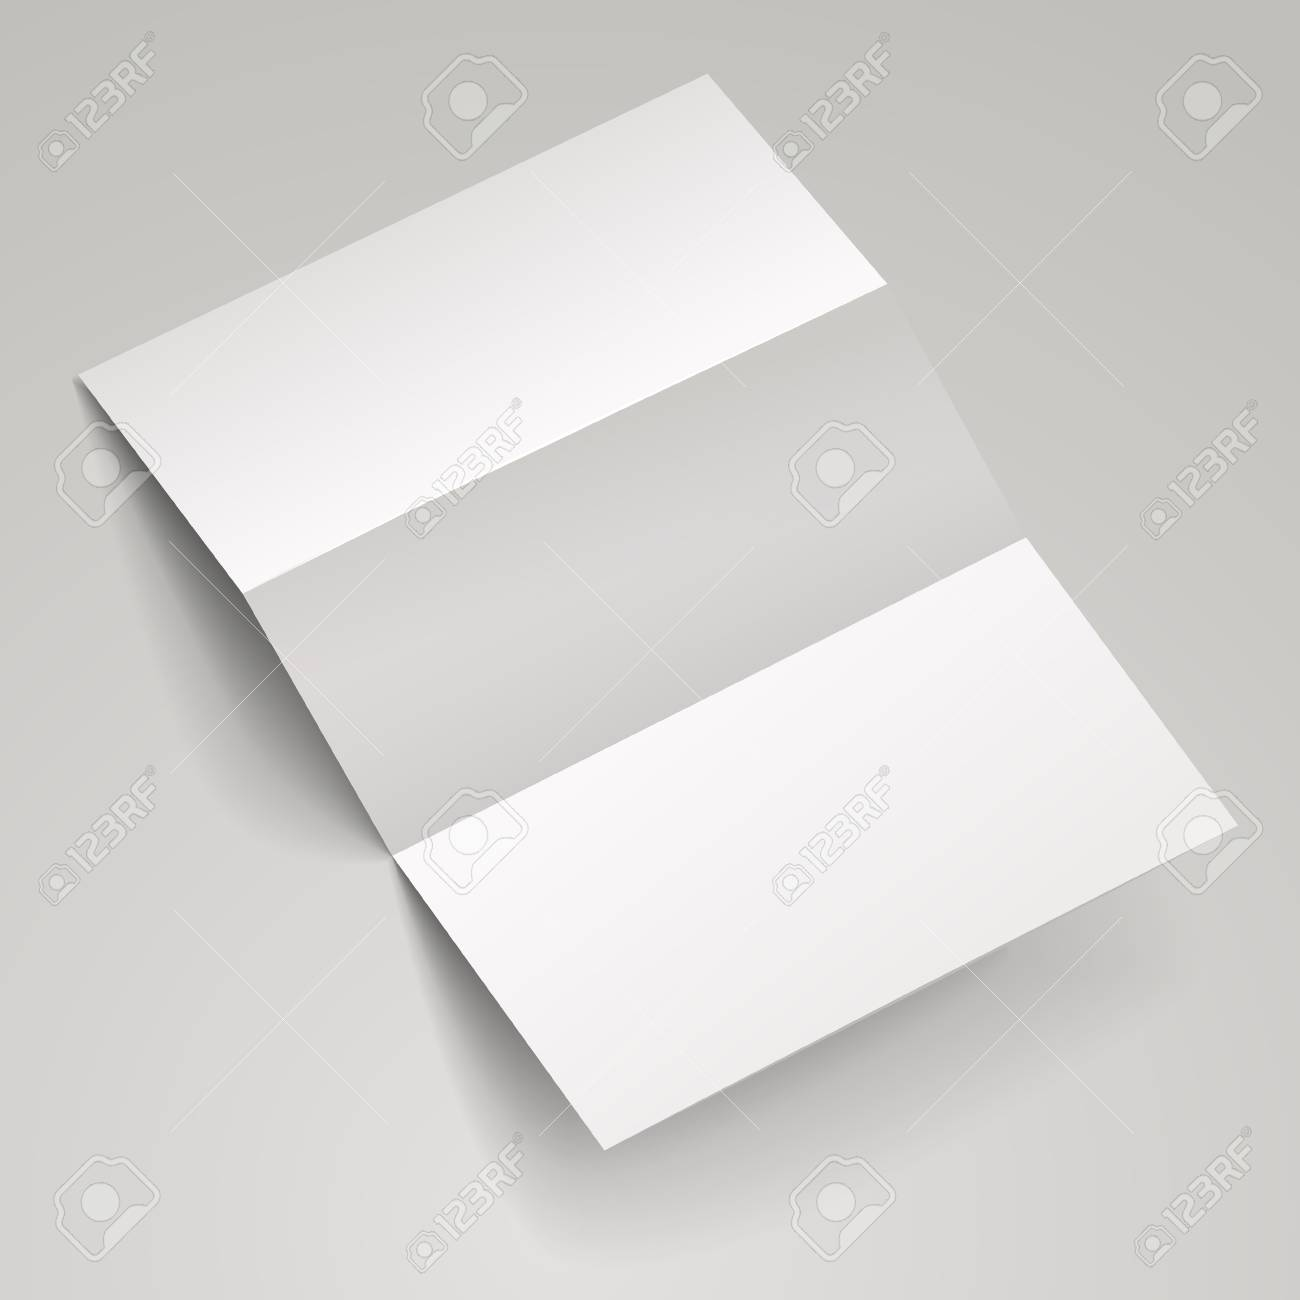 blank tri fold brochure template over white background stock vector 33749533 - Blank Tri Fold Brochure Template